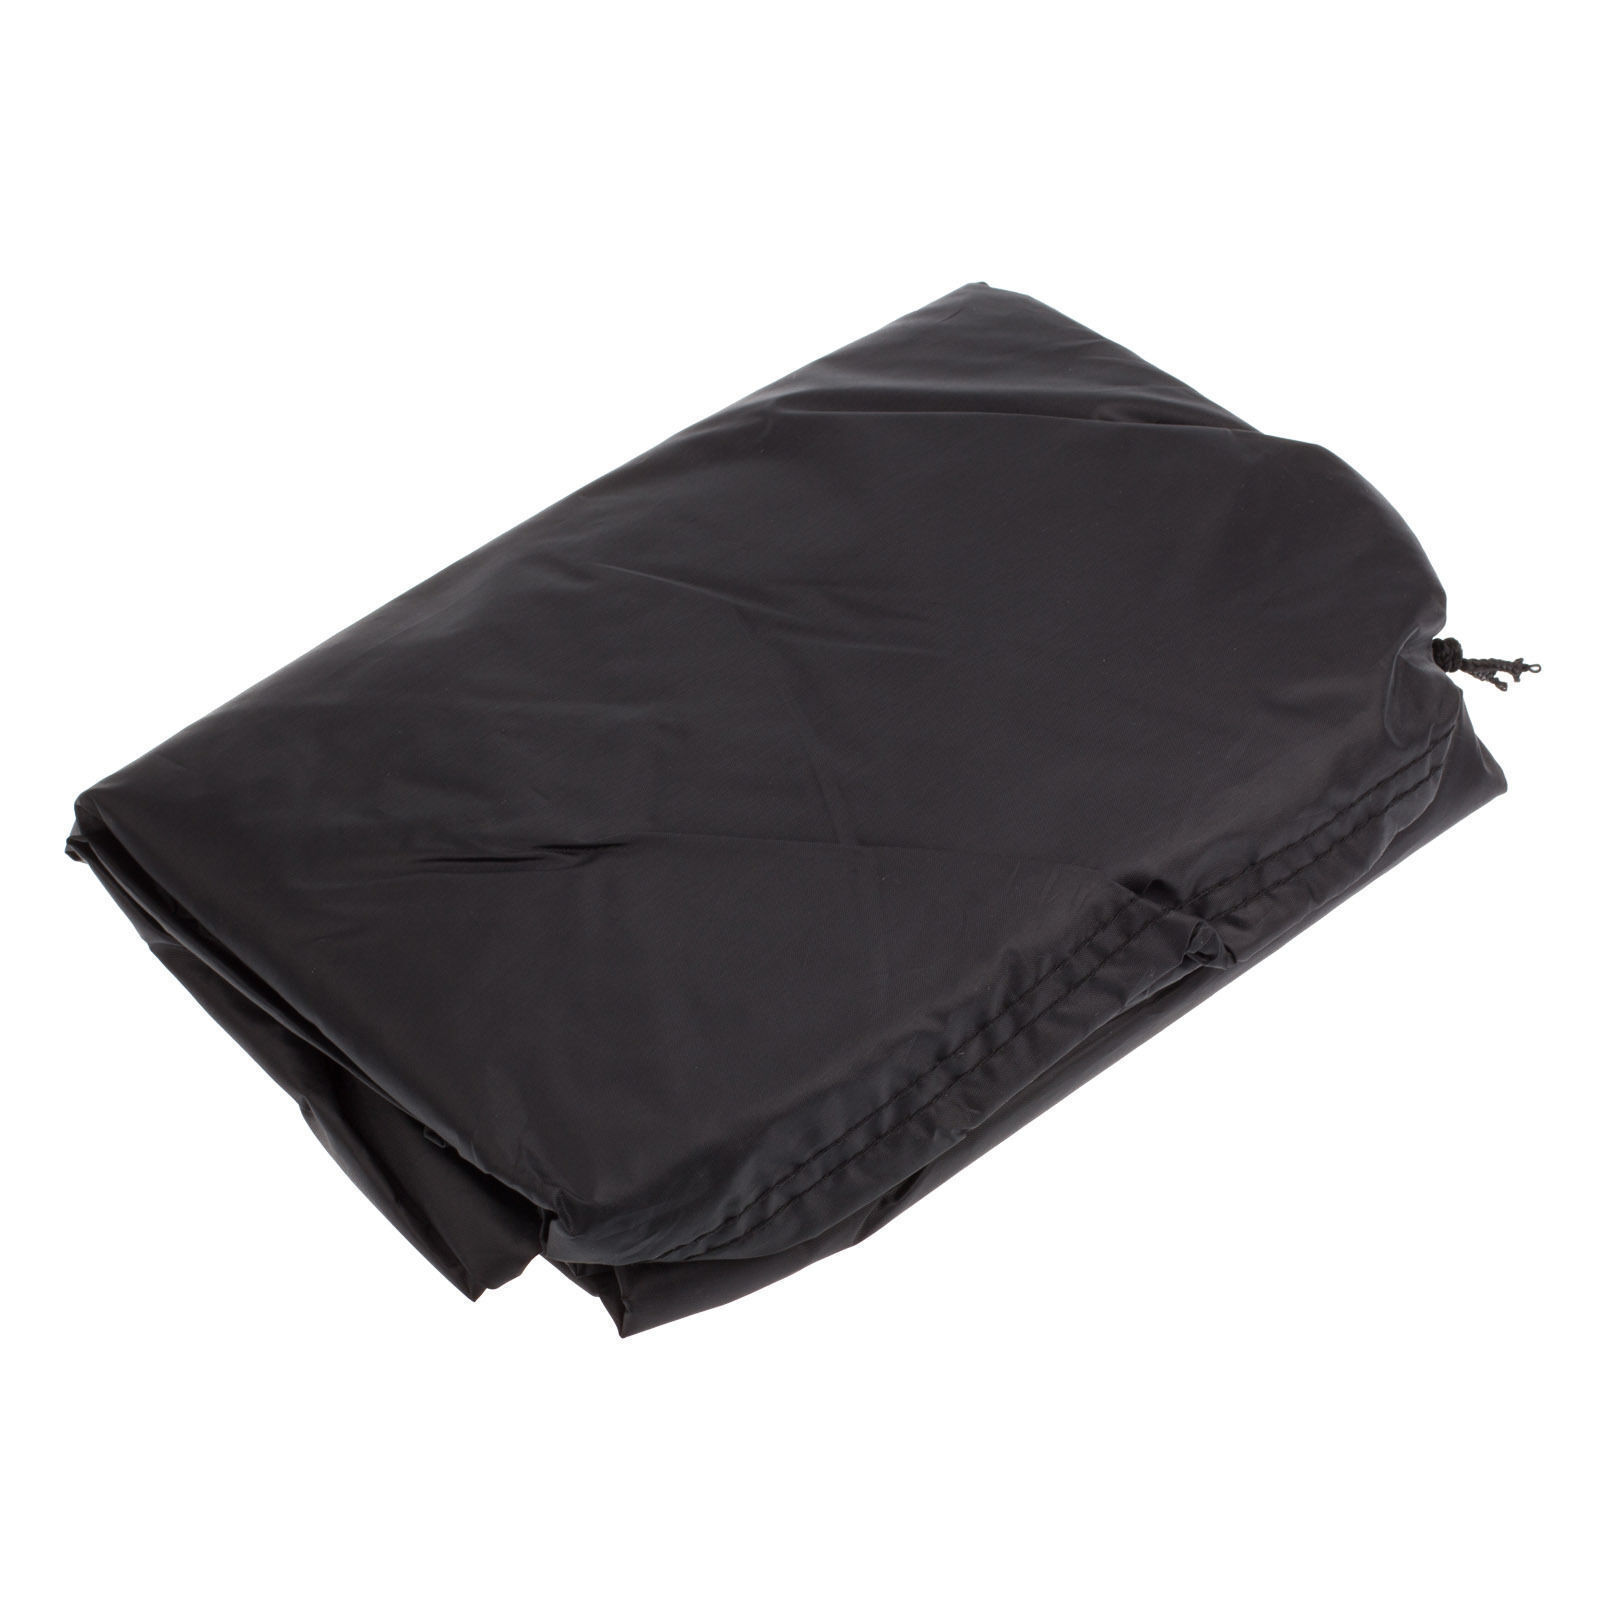 Largerheavy Duty Bbq Cover Rain Waterproof Garden Patio